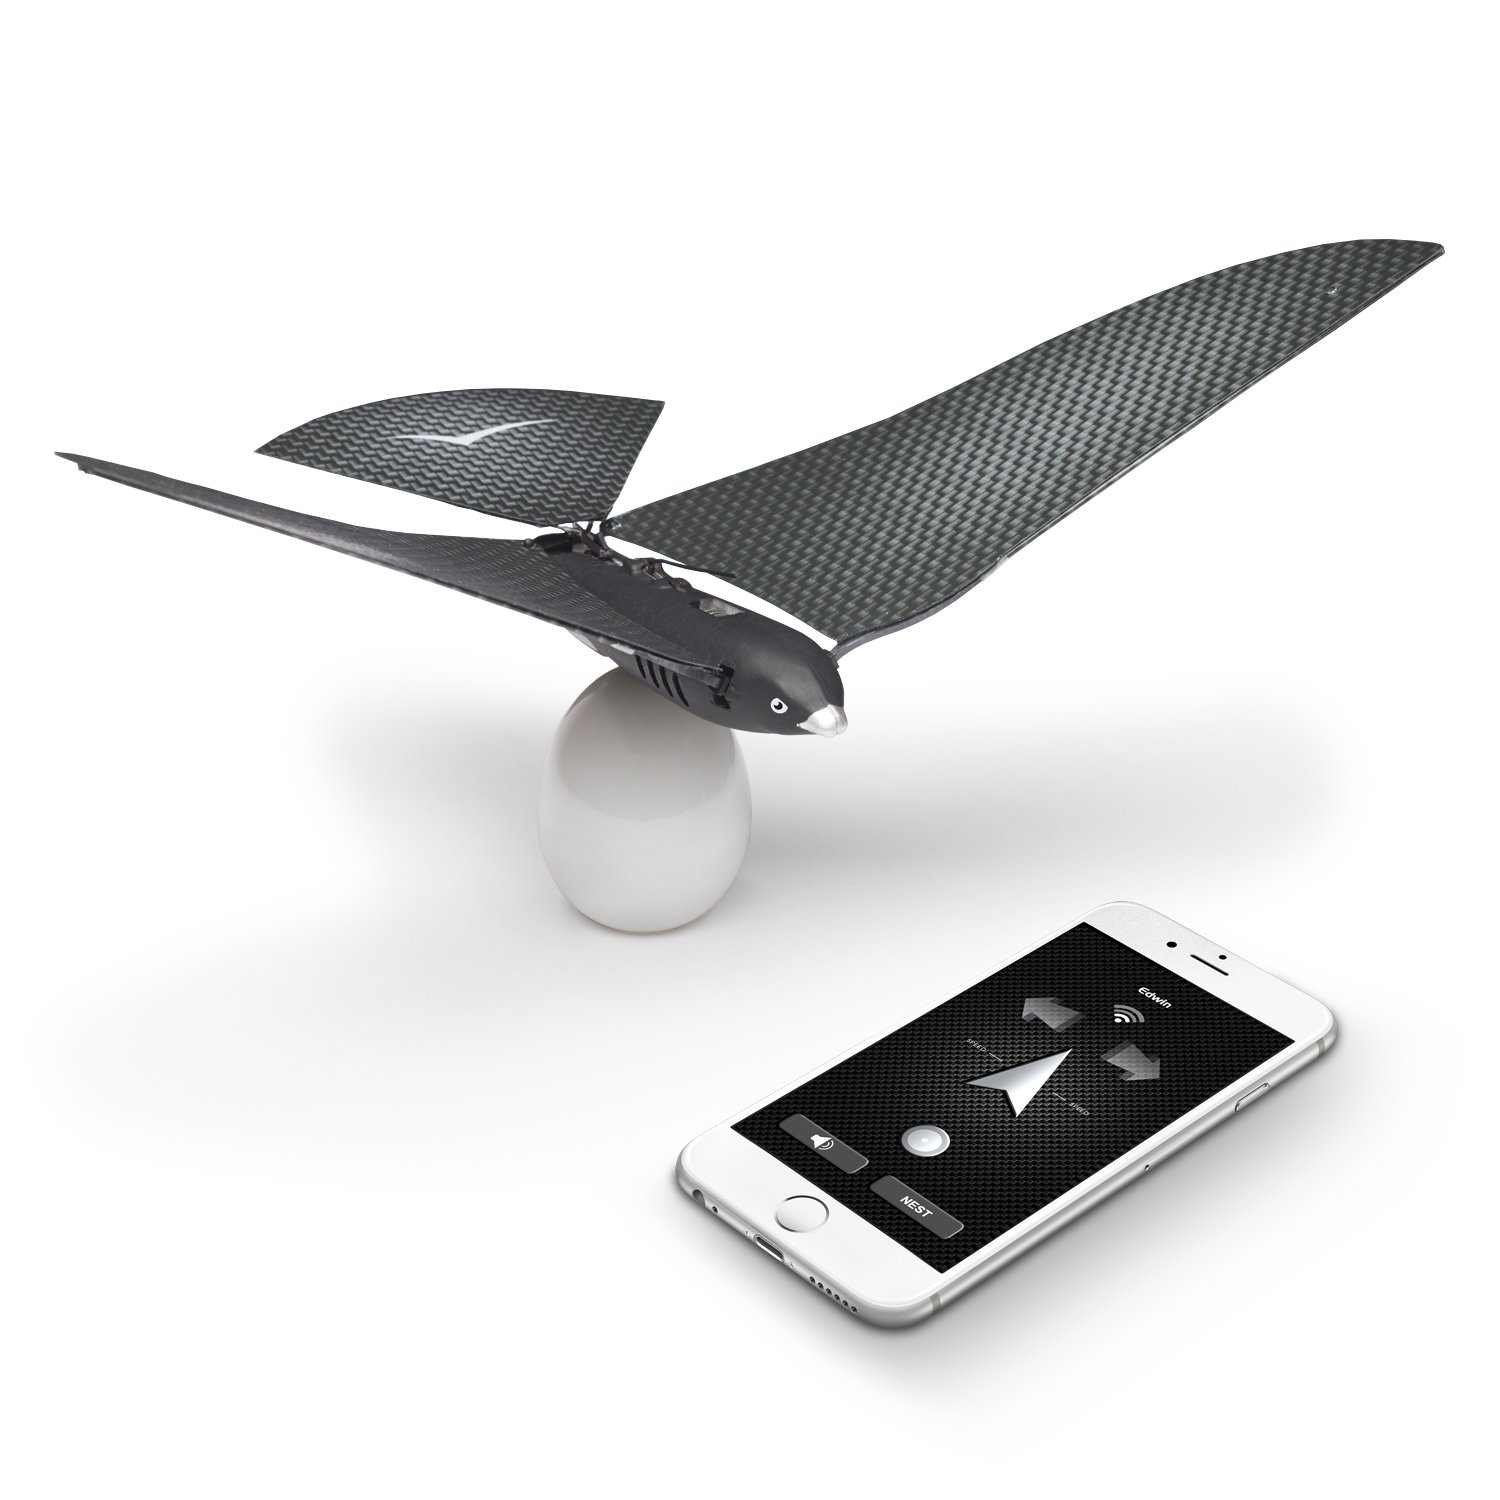 BIONICBIRD THE FLYING APP - PREMIUM PACKAGE - Smart Flying Robot + Egg Charger + Extra pair of wings by BIONICBIRD THE FLYING APP